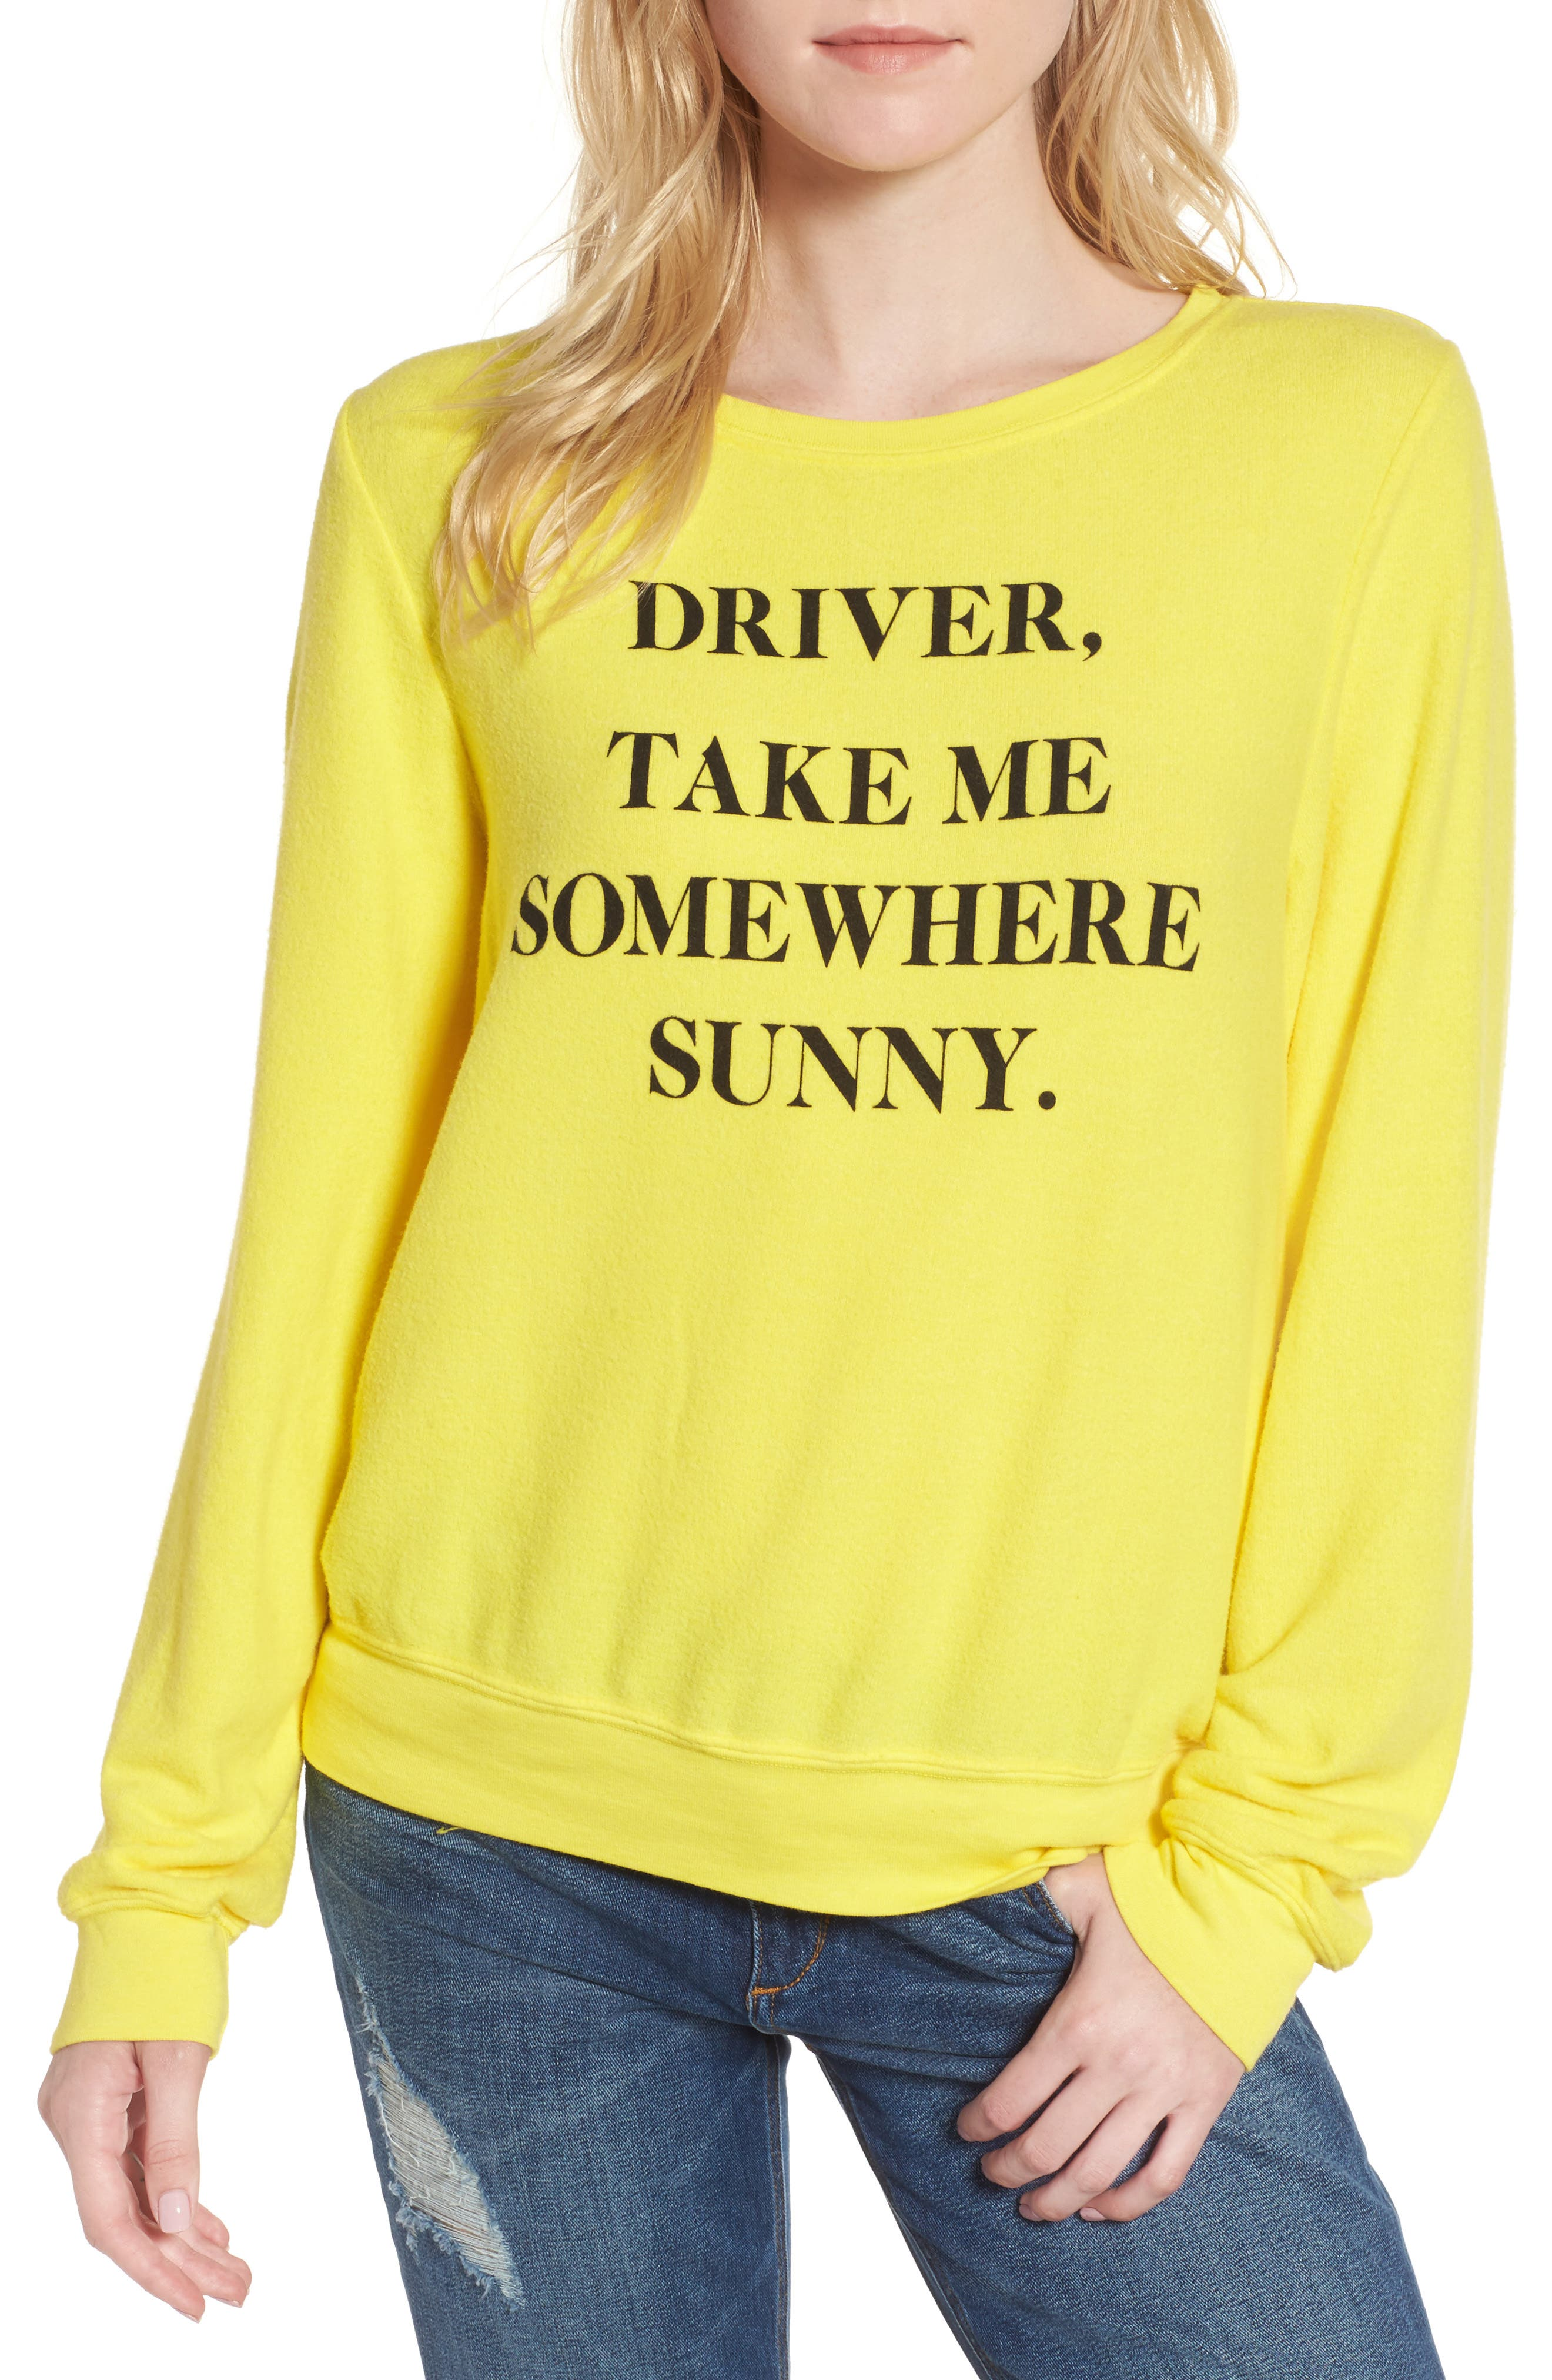 Alternate Image 1 Selected - Wildfox 'Somewhere Sunny' Sweatshirt